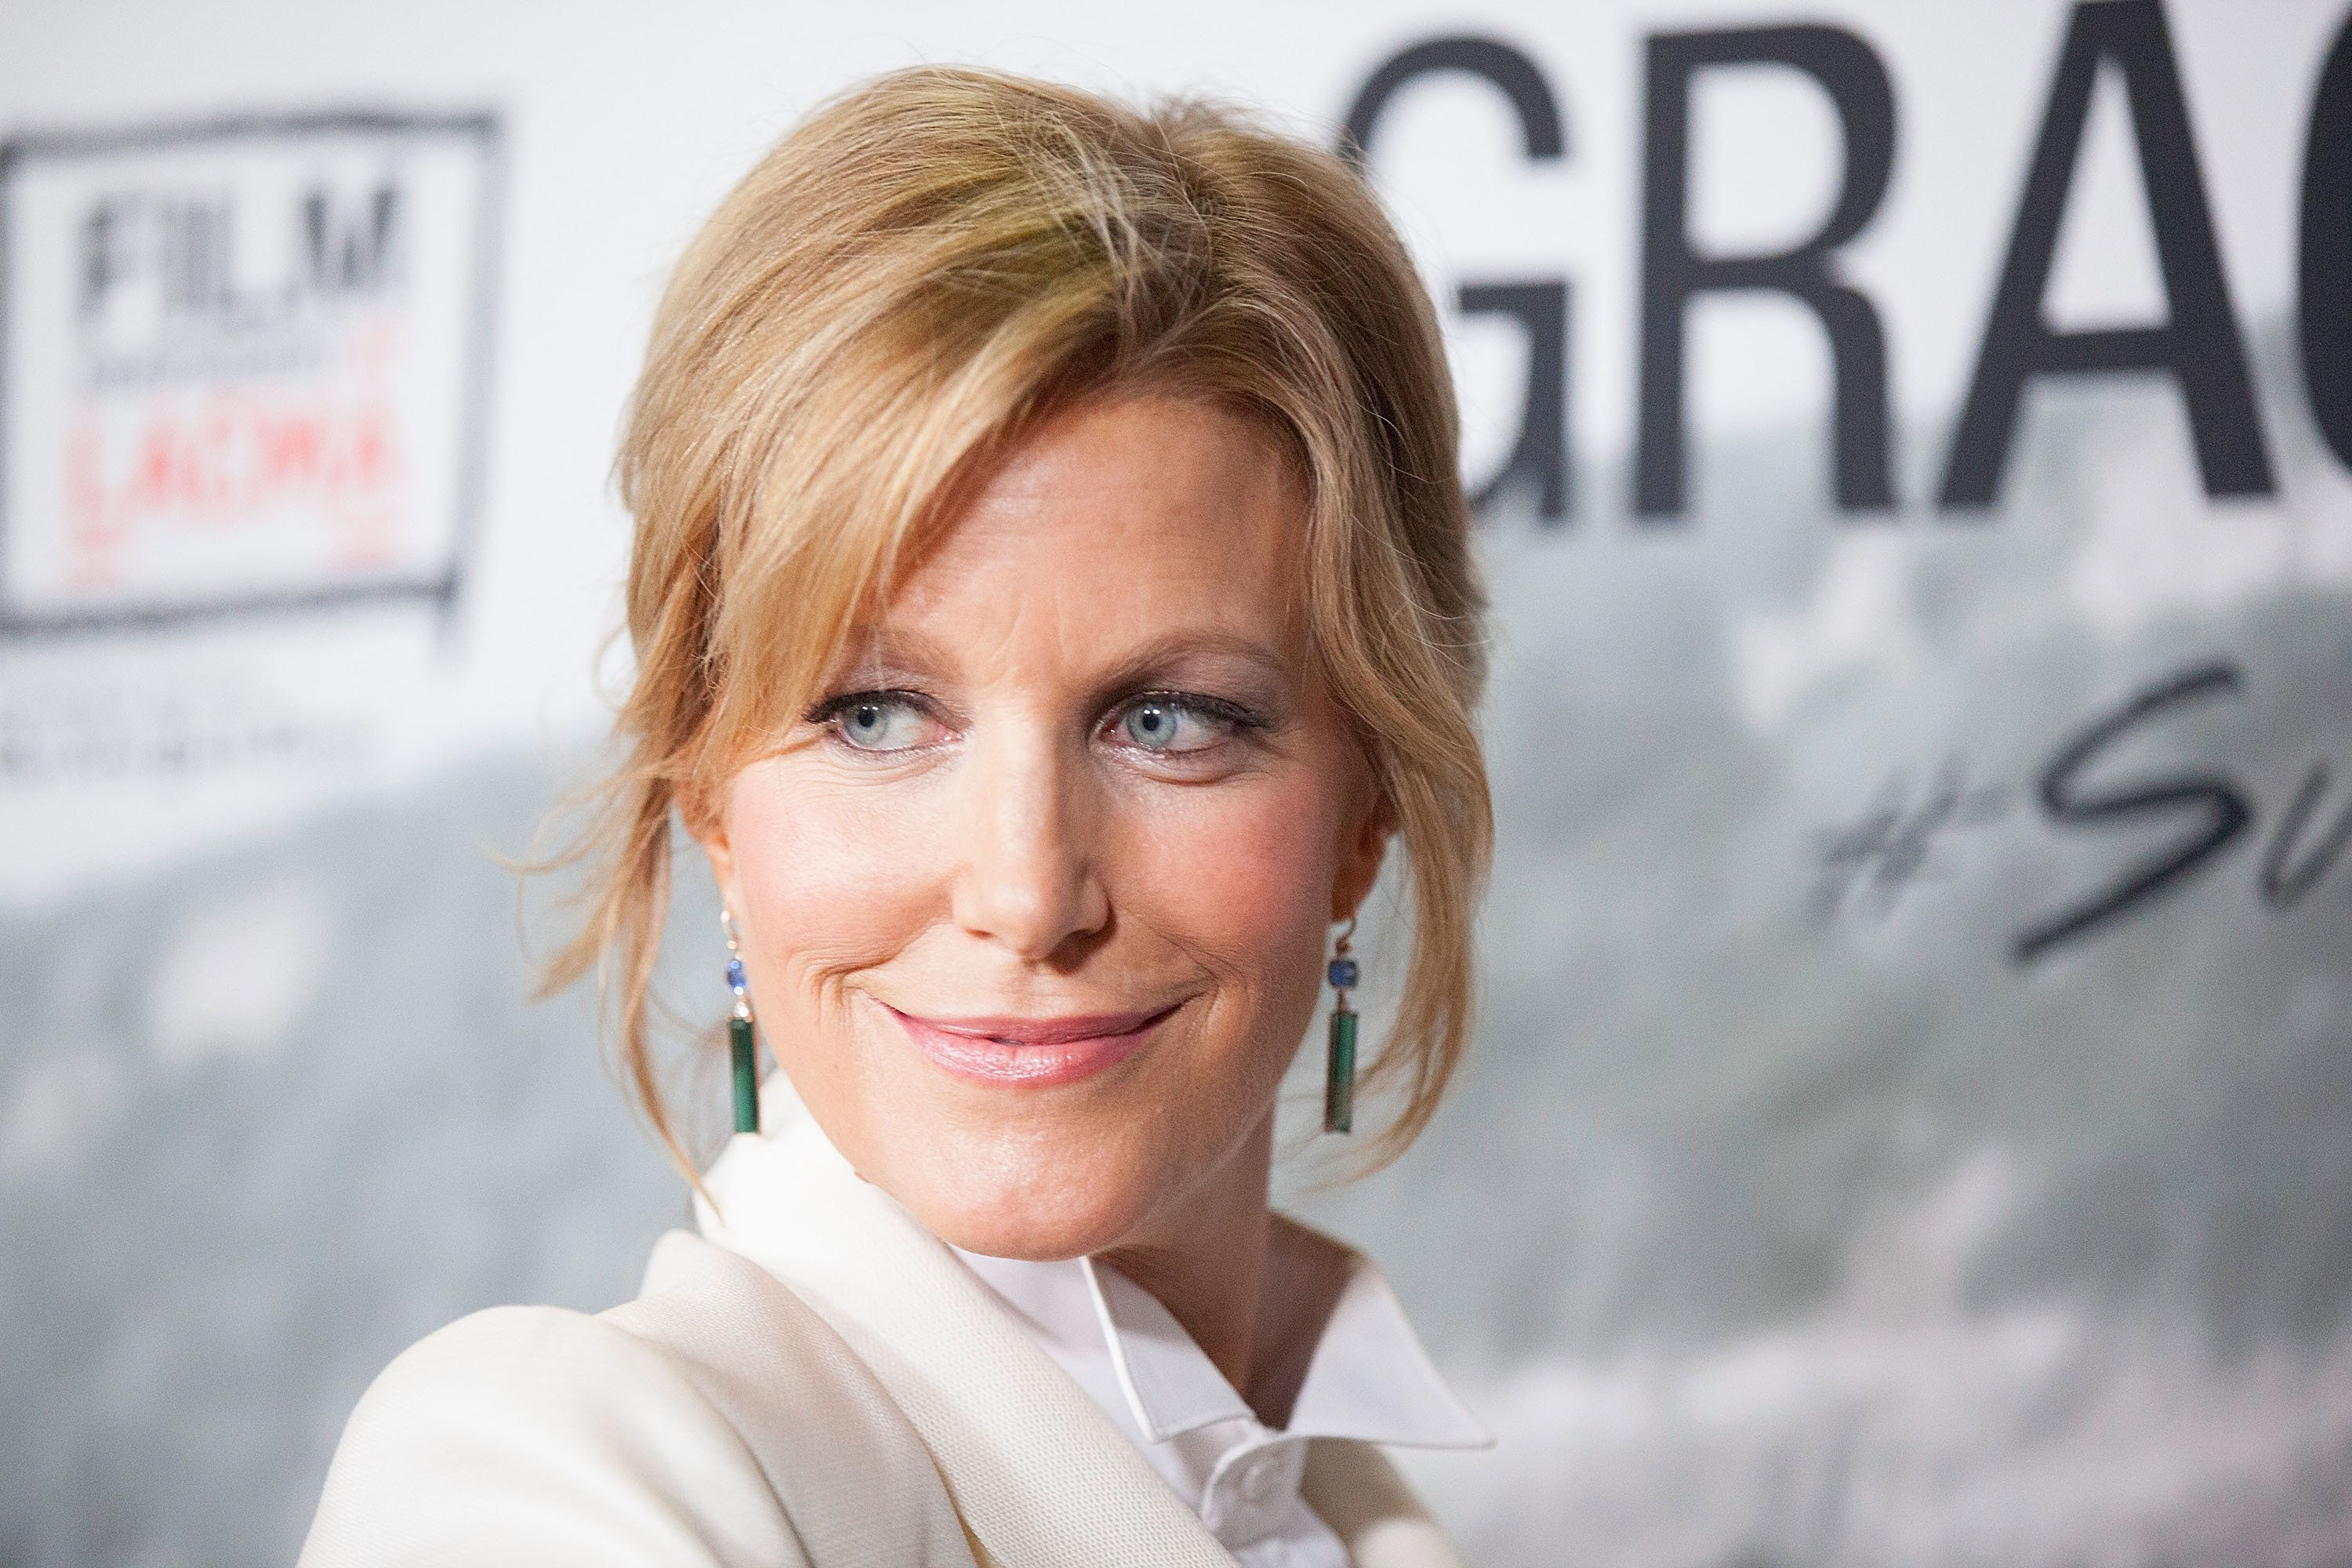 LOS ANGELES, CA - SEPTEMBER 30:  Anna Gunn arrives for the Film Independent Screening Series Of 'Gracepoint' at Bing Theatre At LACMA on September 30, 2014 in Los Angeles, California.  (Photo by Gabriel Olsen/FilmMagic)